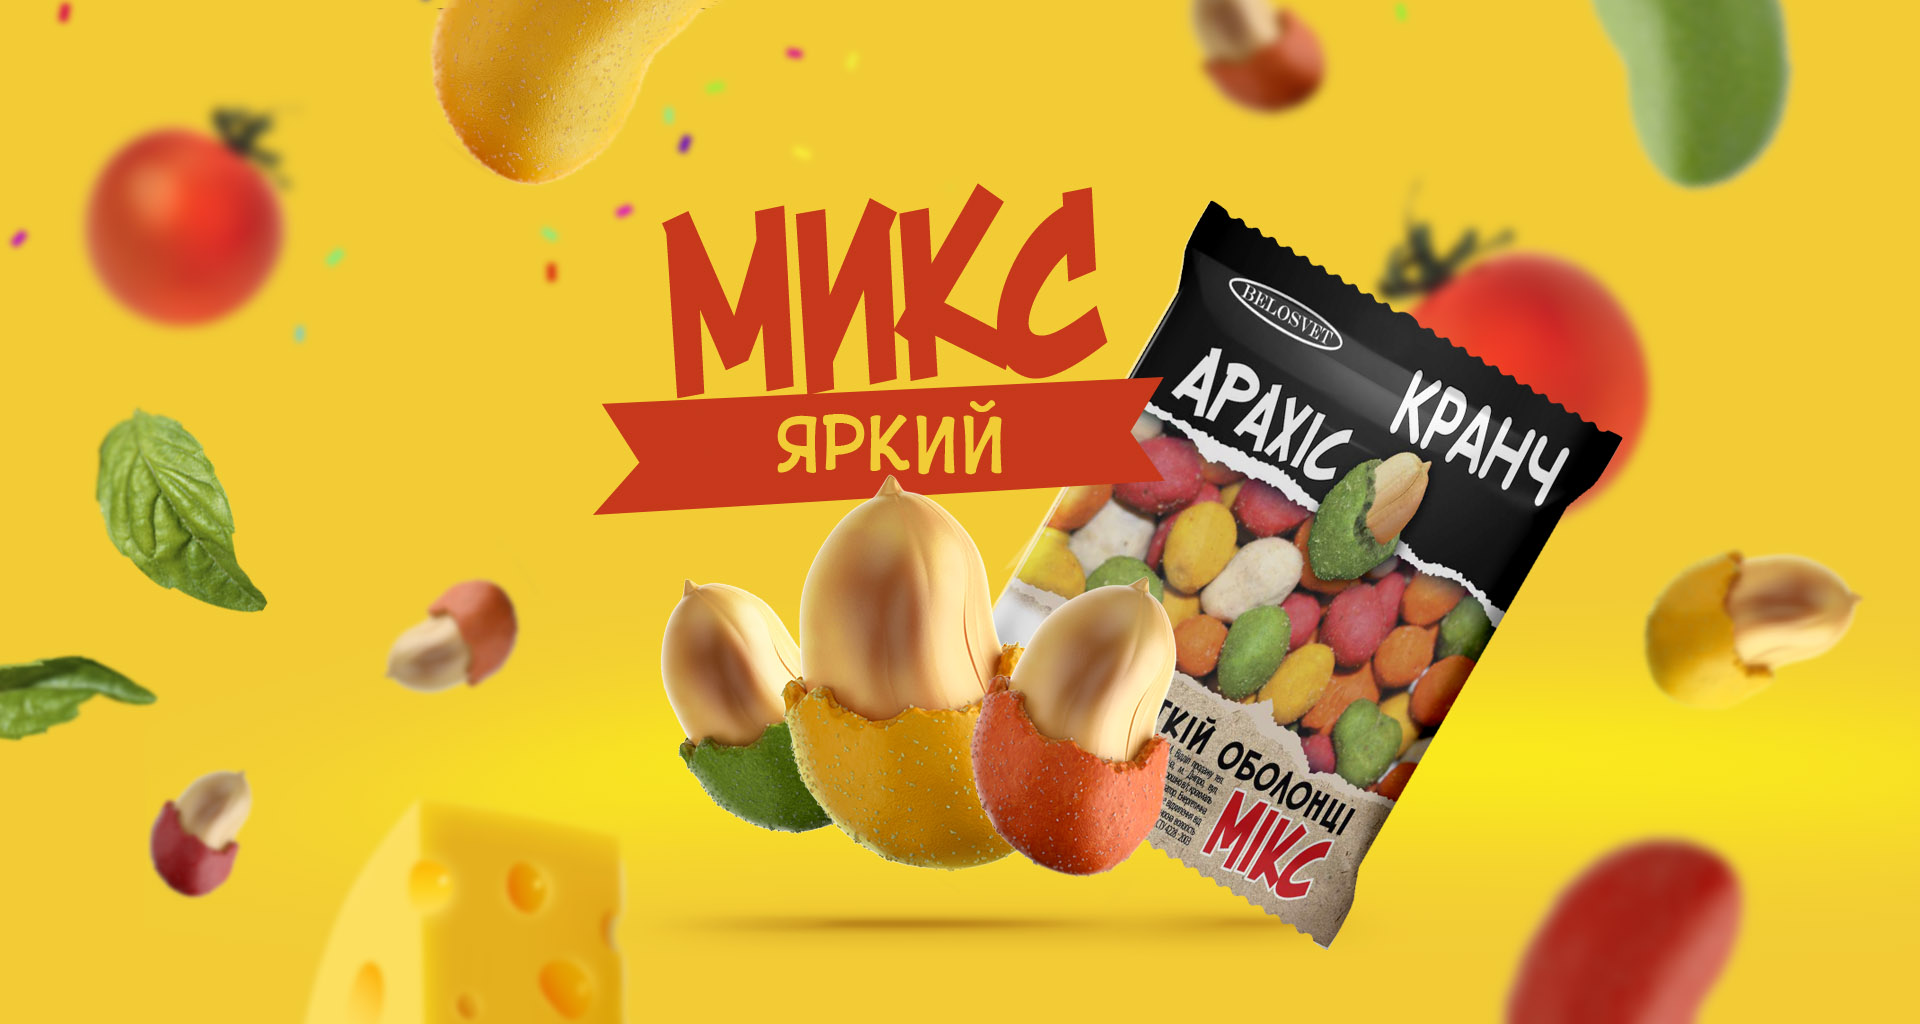 Дизайн упаковки для снеков, Sneck packaging design